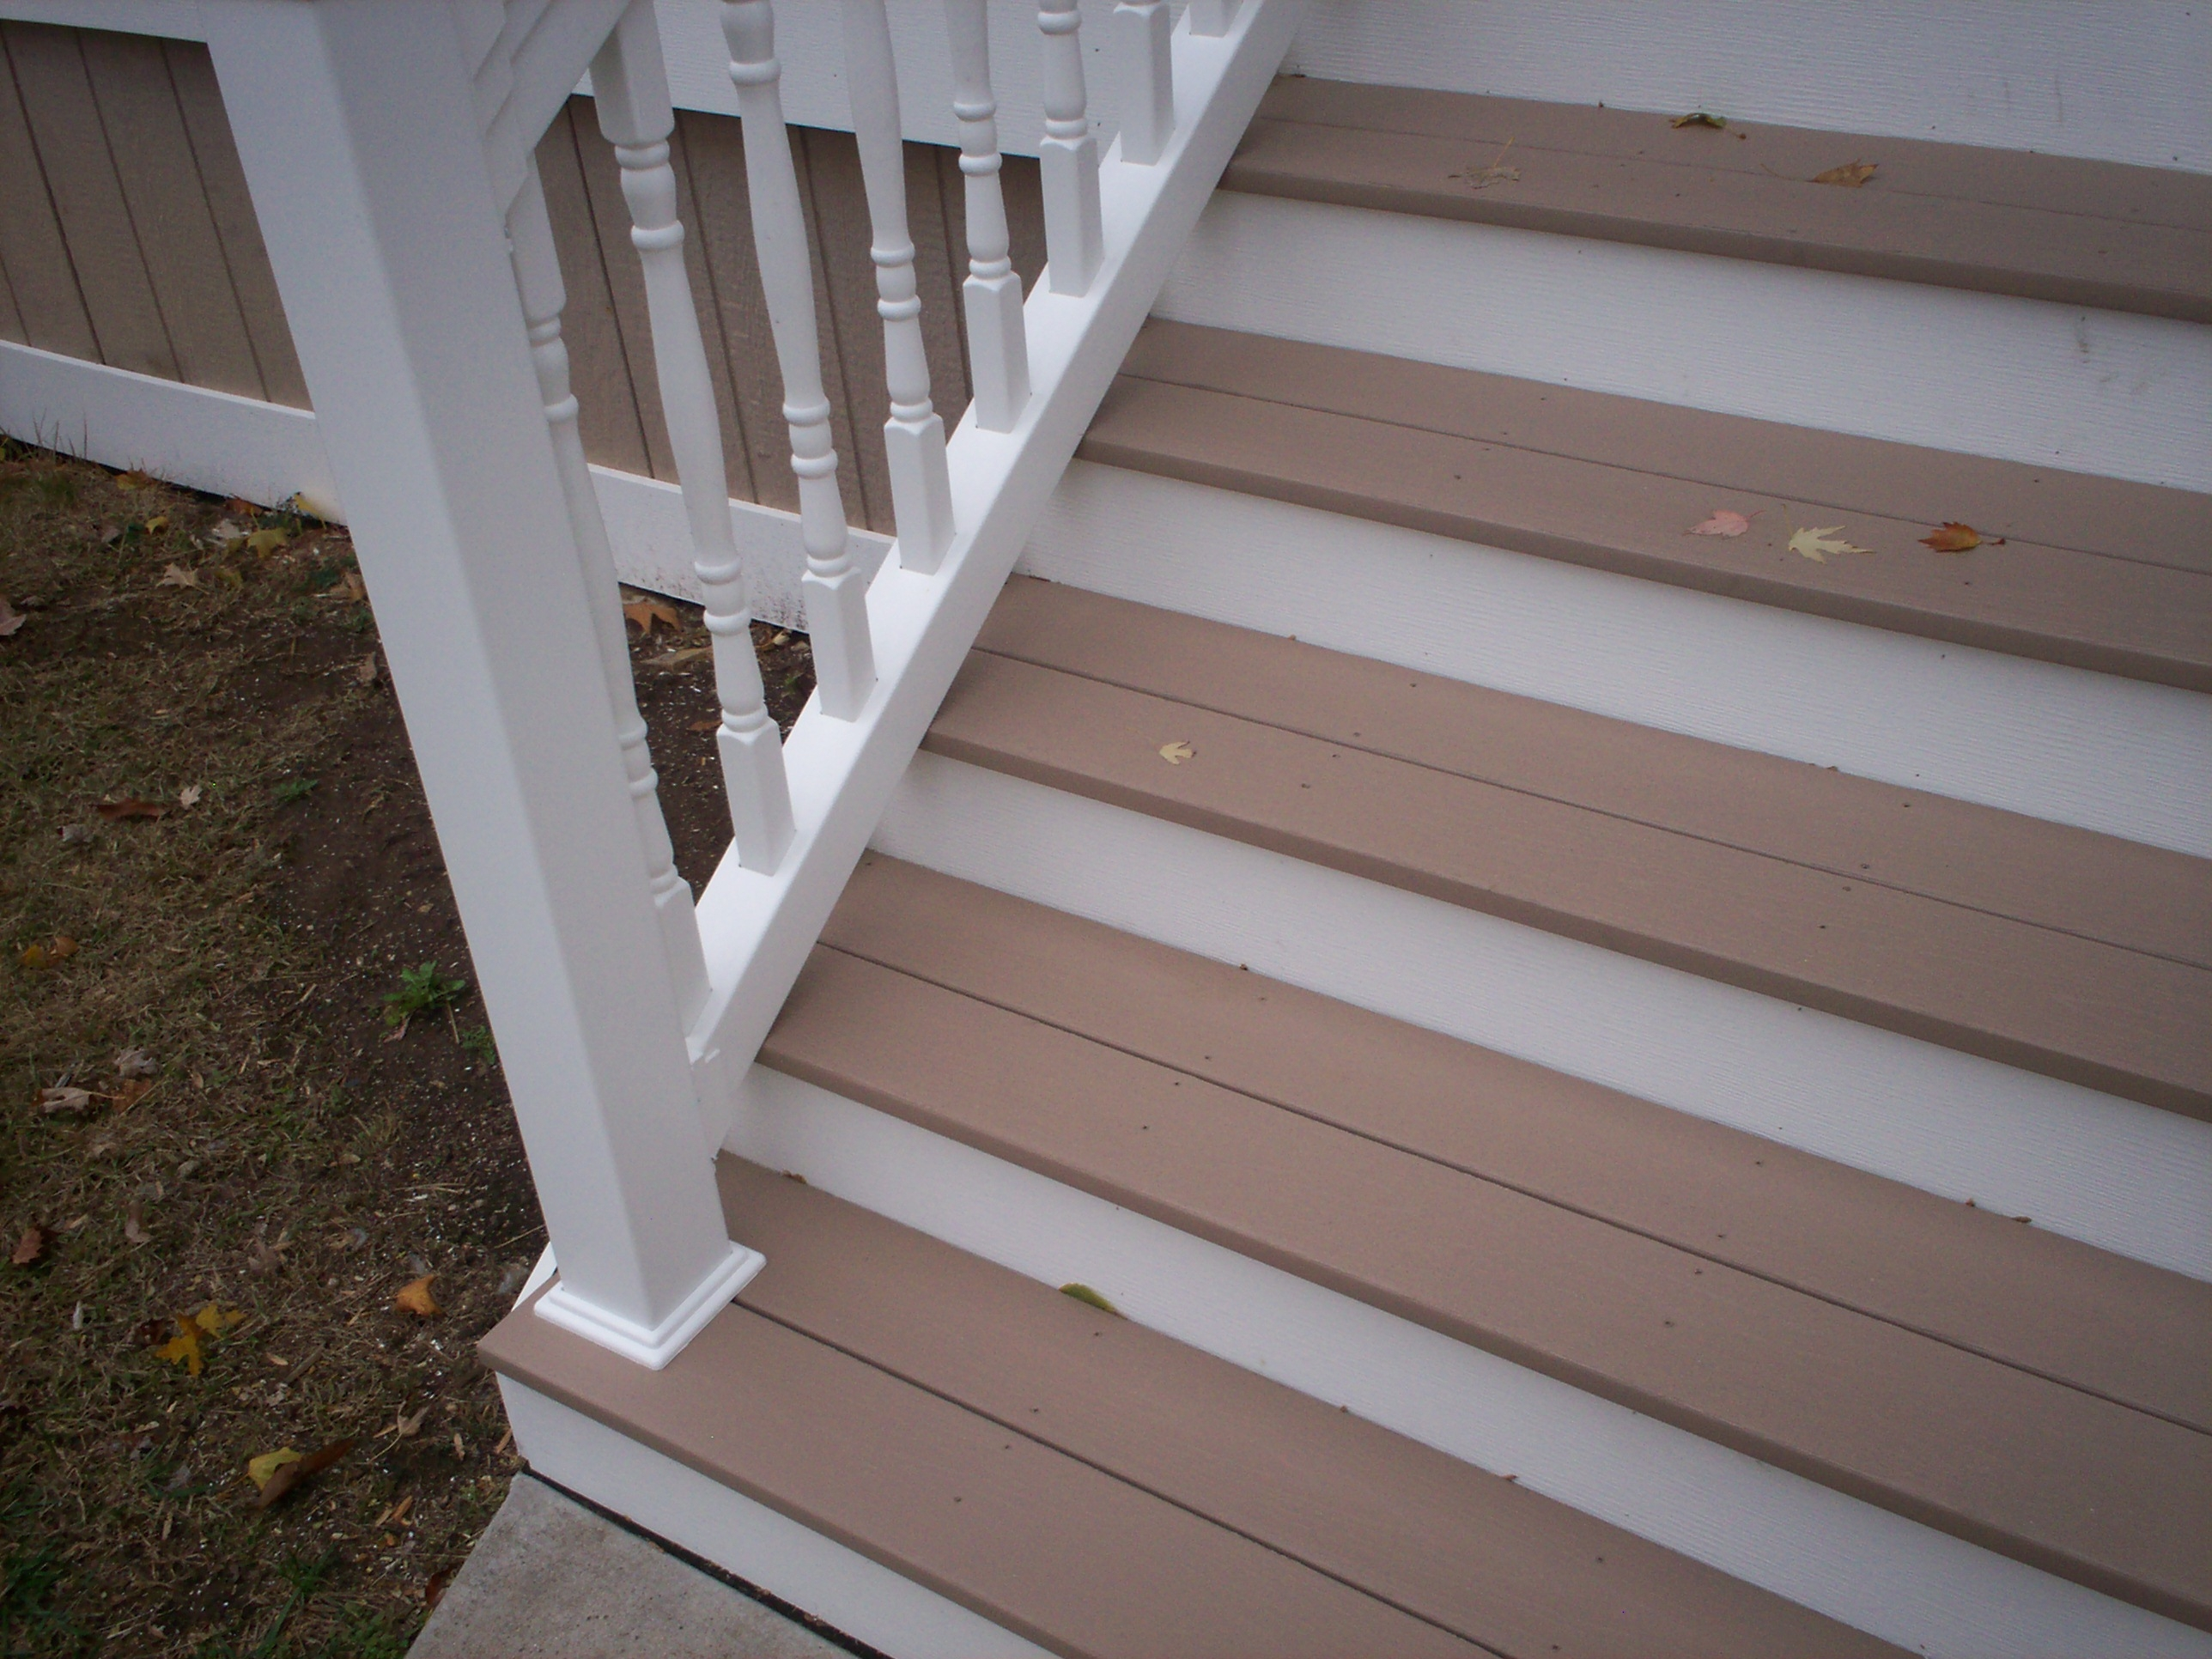 Azek Front Porch Stairs And Vinyl Railings With Columns In St | Front Porch Stair Railing | Wood | Style Cape Cod | Modern | Simple | Patio